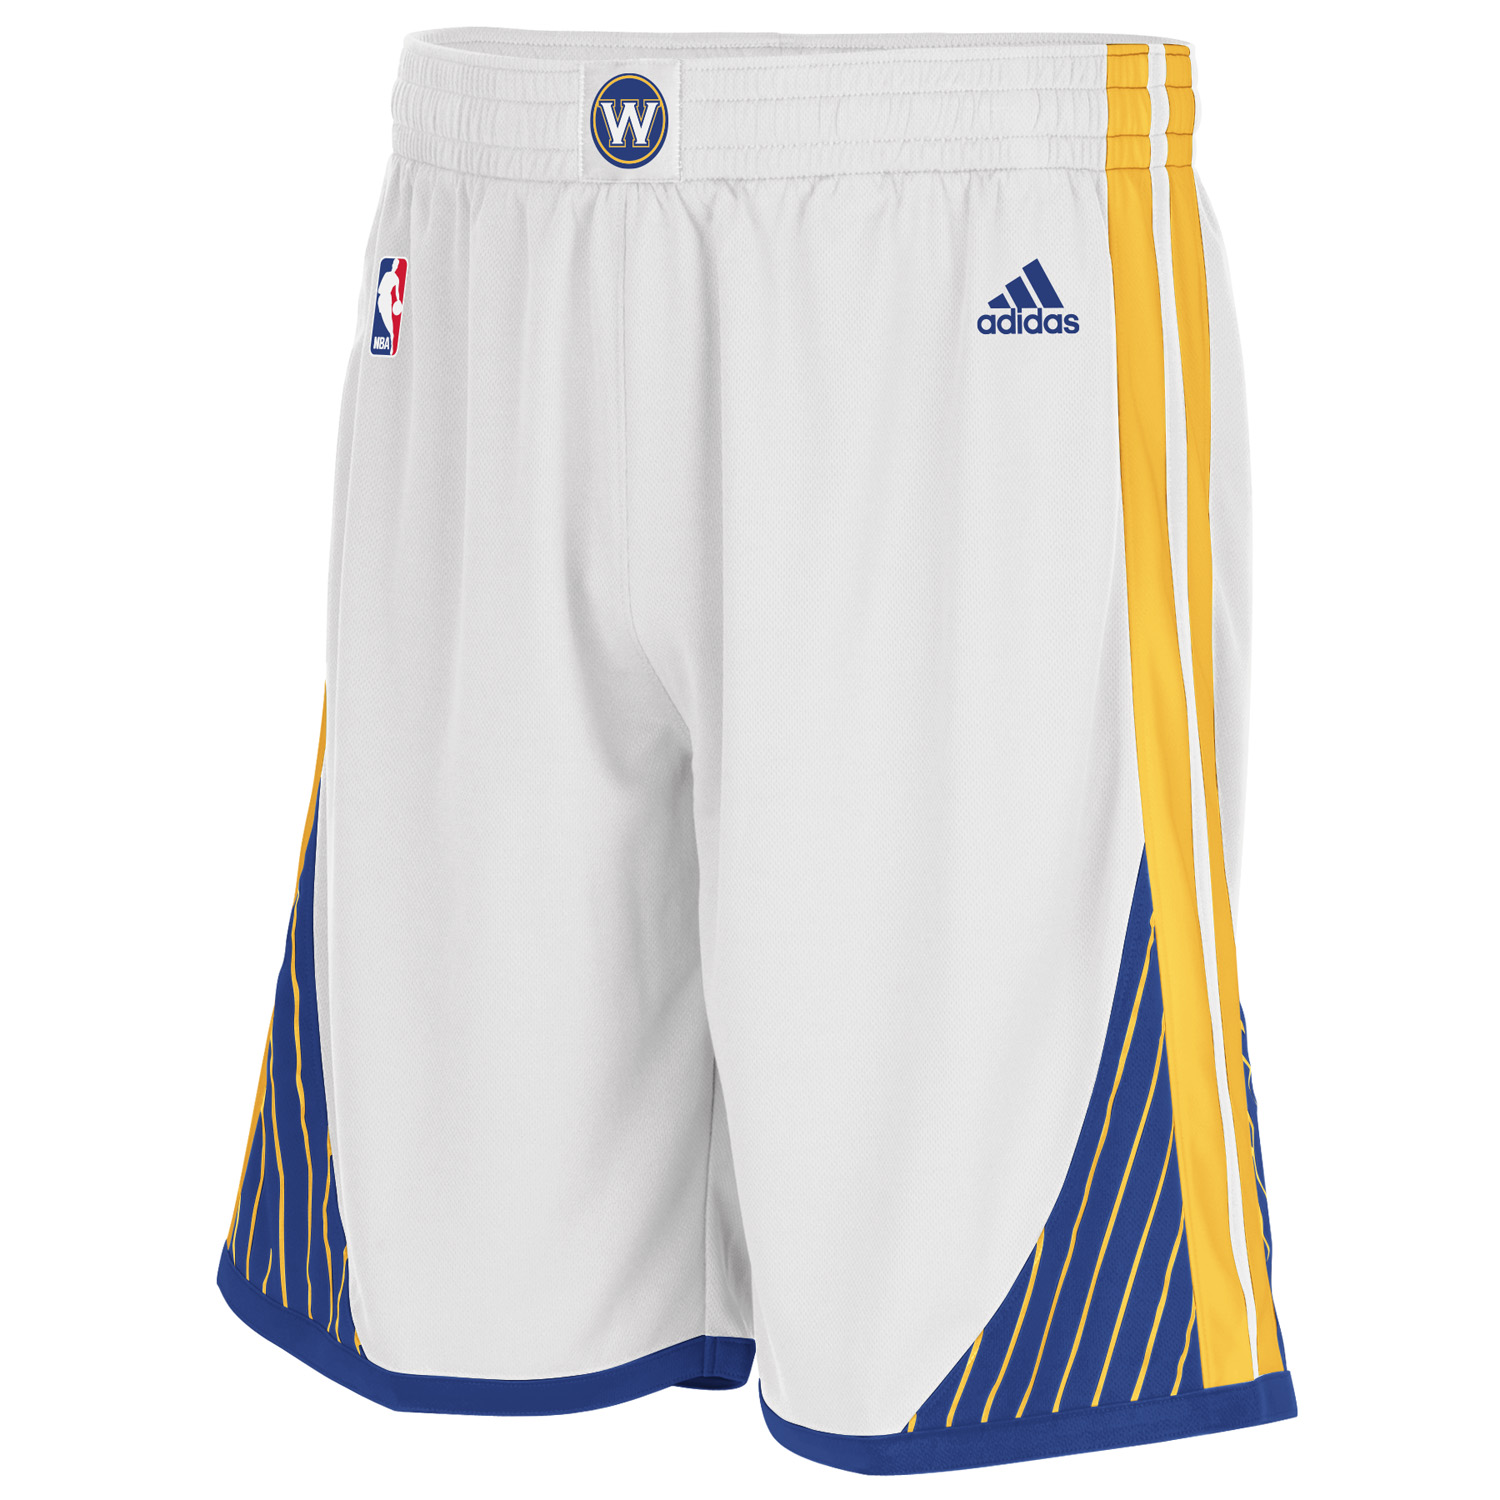 Golden State Warriors Home Swingman Shorts - Youths